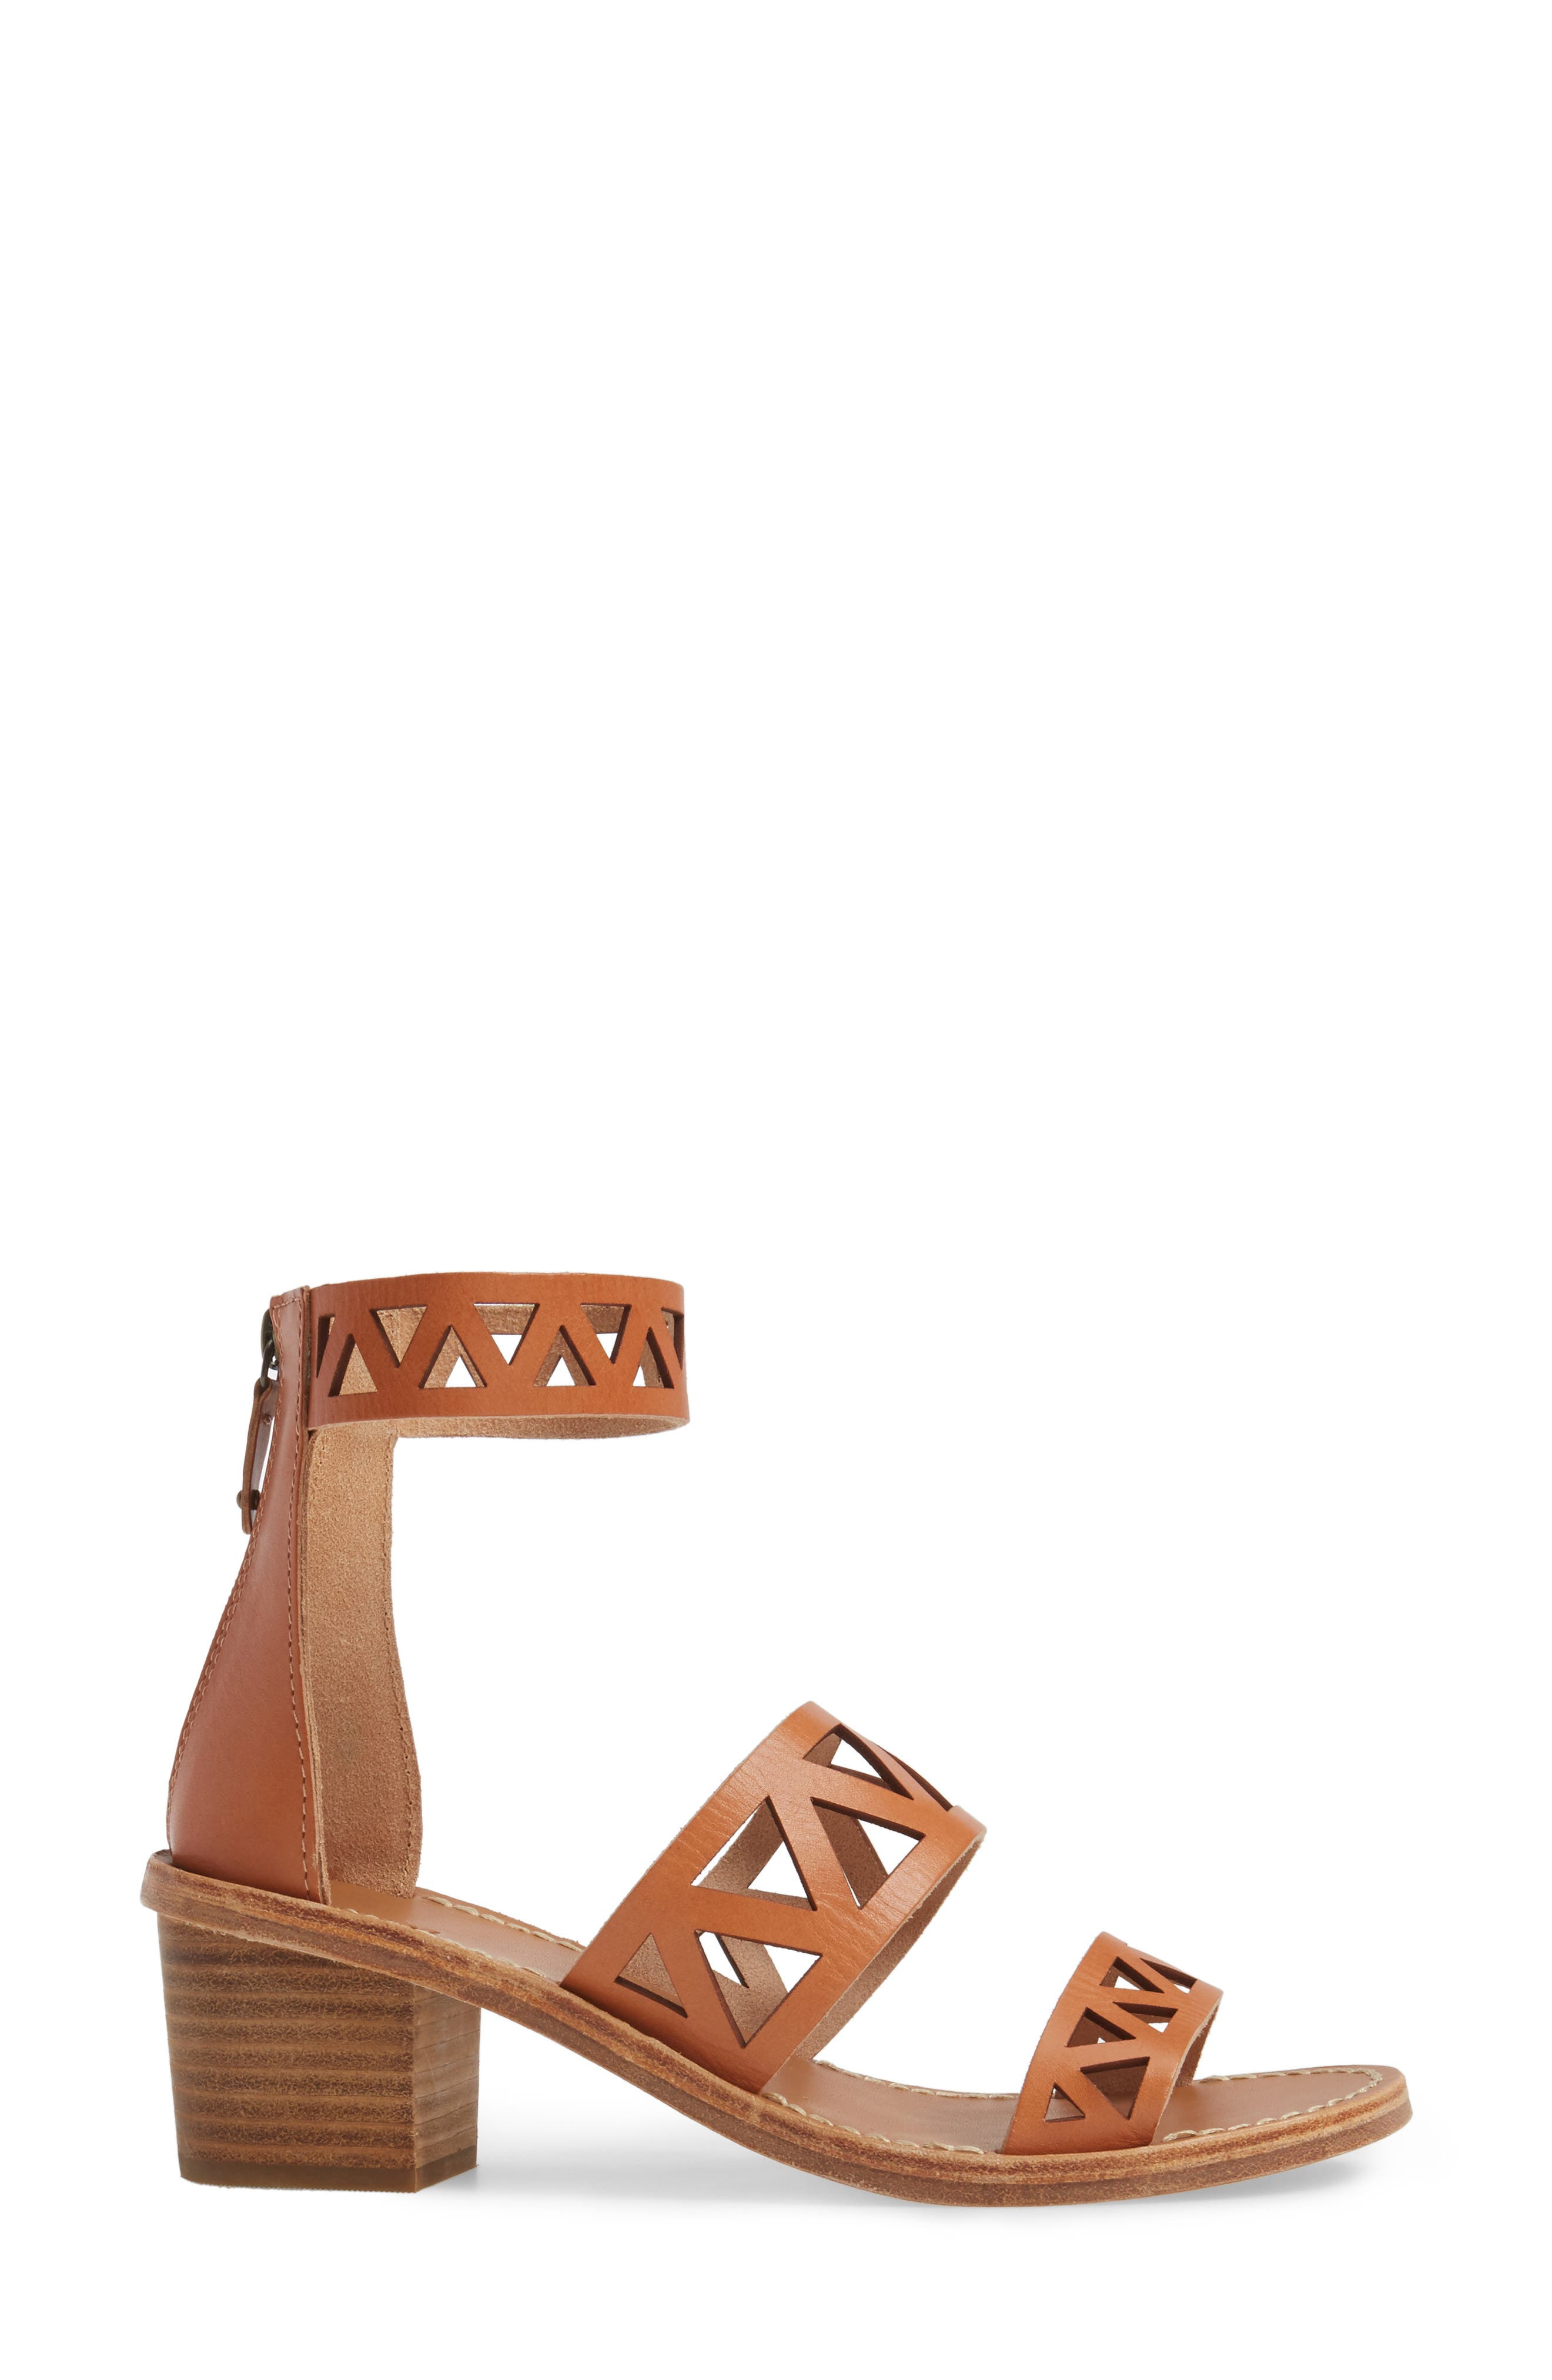 Perforated Ankle Strap Sandal,                             Alternate thumbnail 3, color,                             200